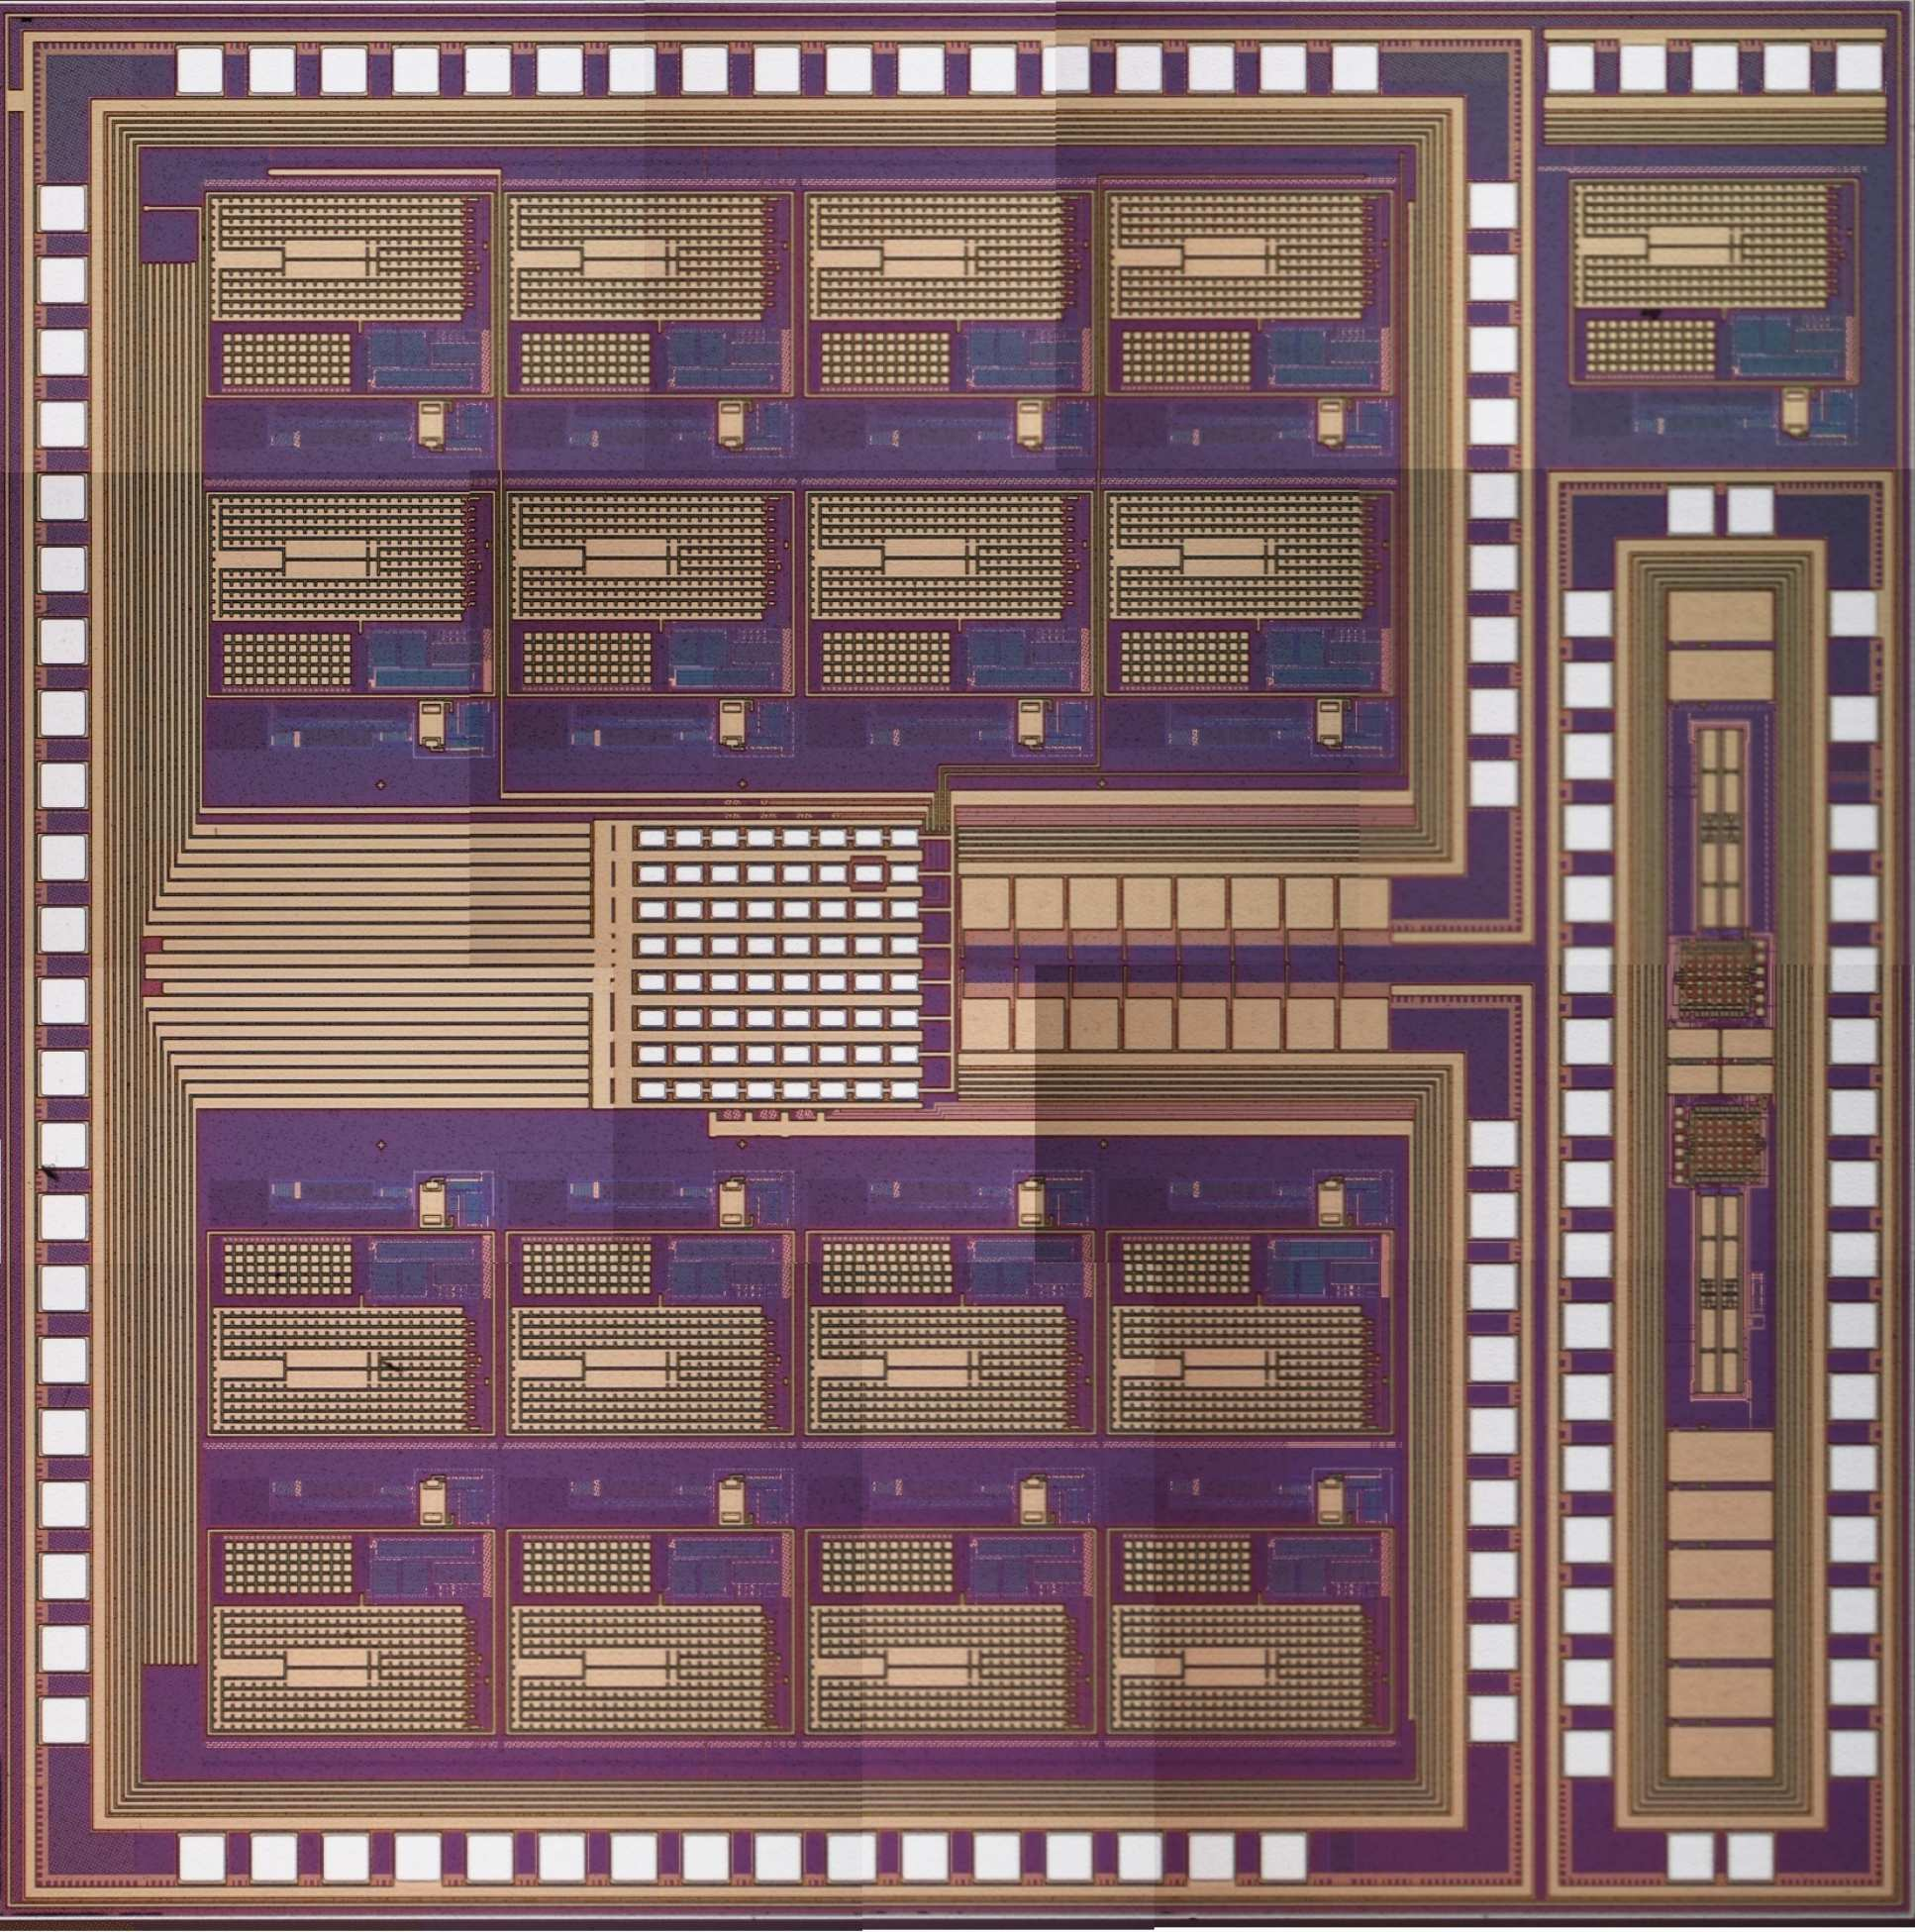 CBIT13G03 Thermal Lab-on-Chip for in-vitro ePhys